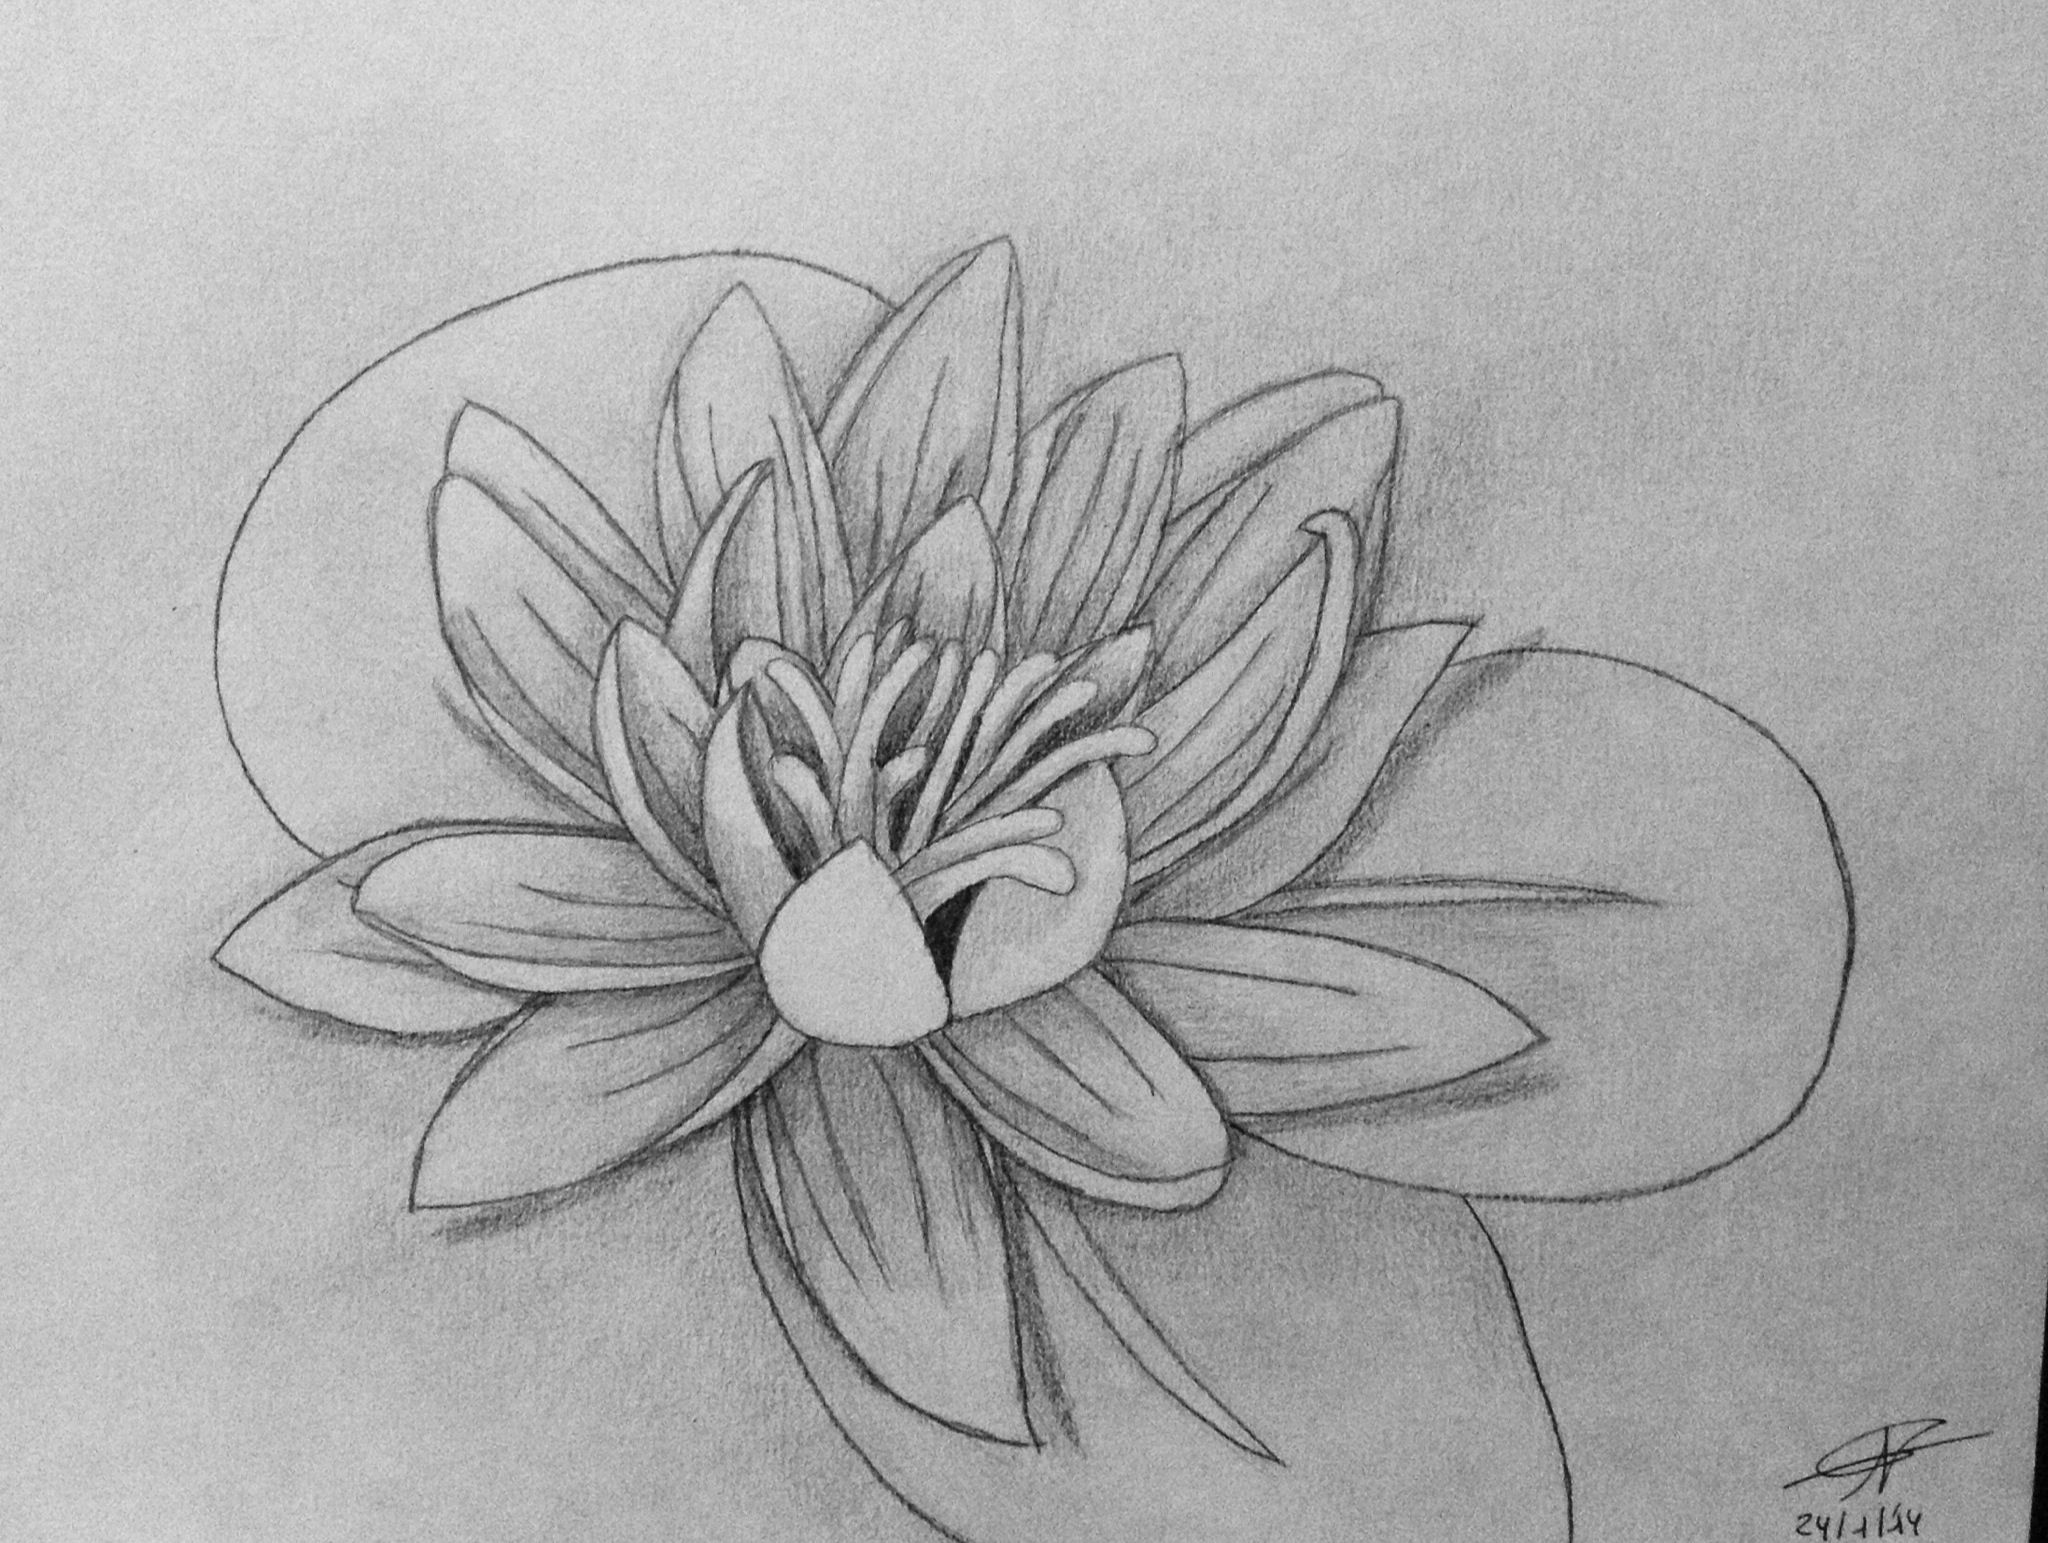 Water lily pad drawing